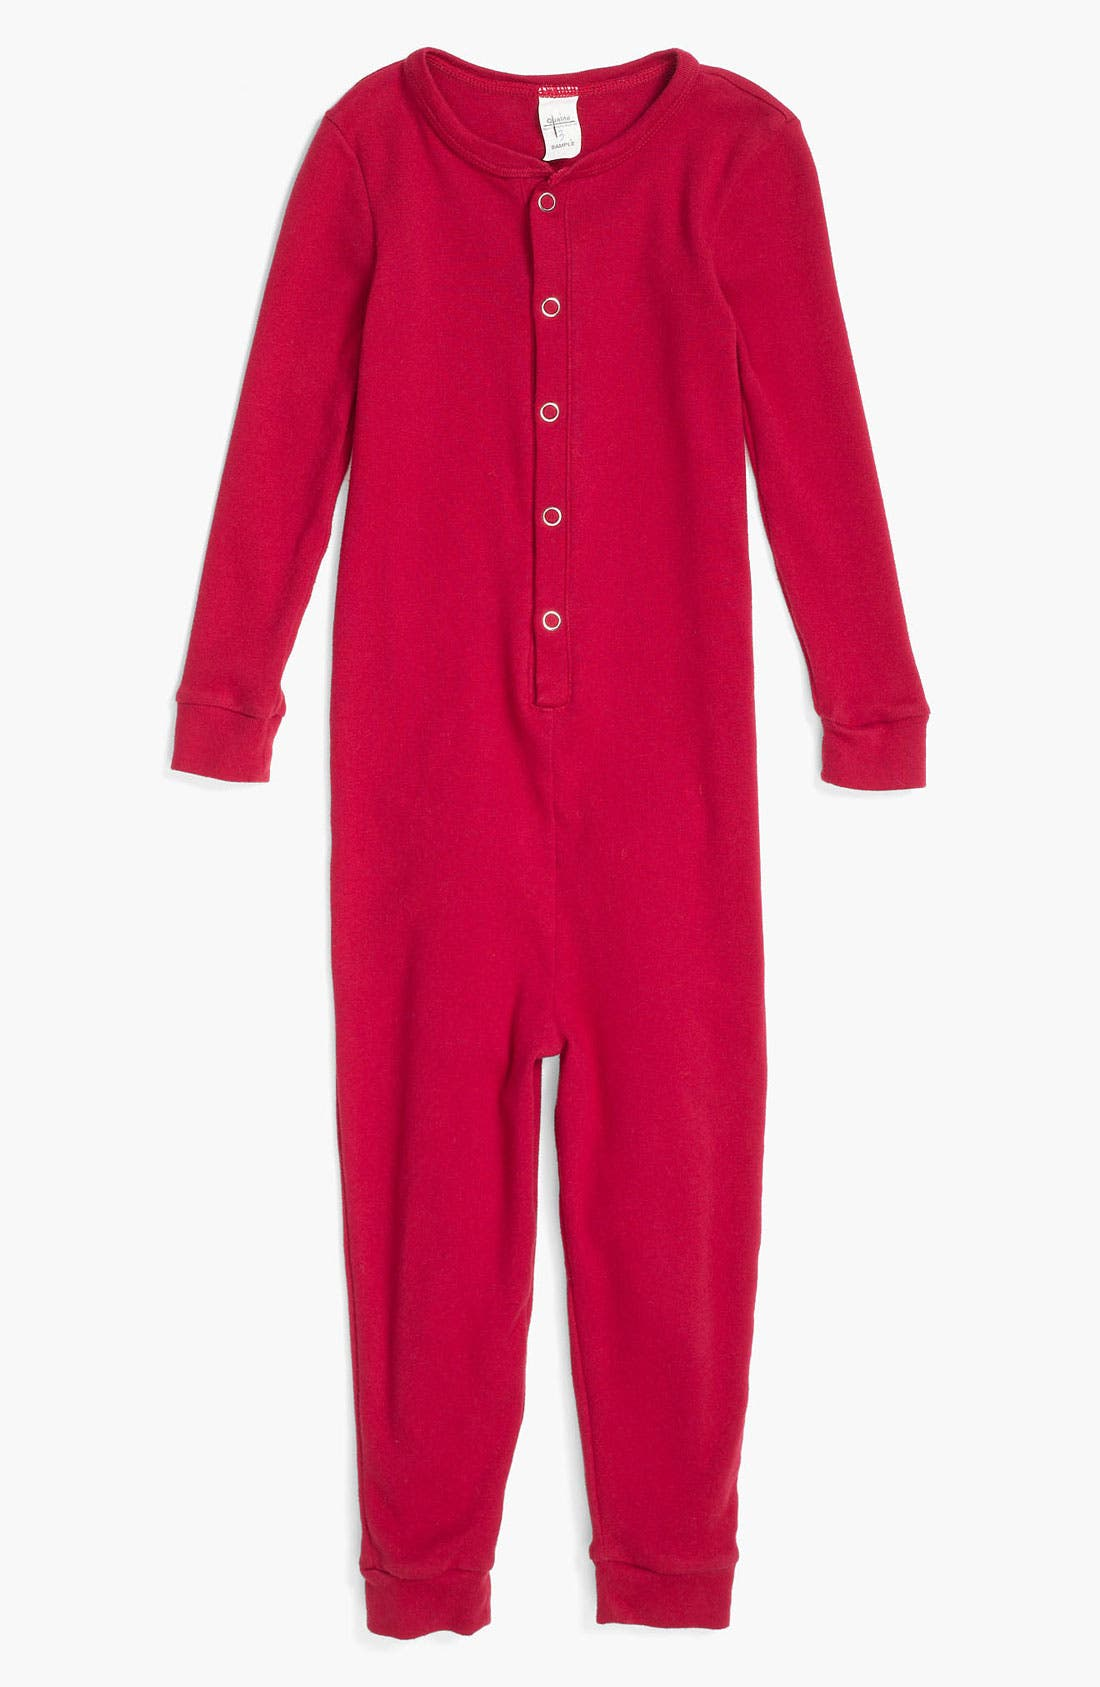 Alternate Image 1 Selected - Tucker + Tate 'Union Suit' Pajamas (Toddler)